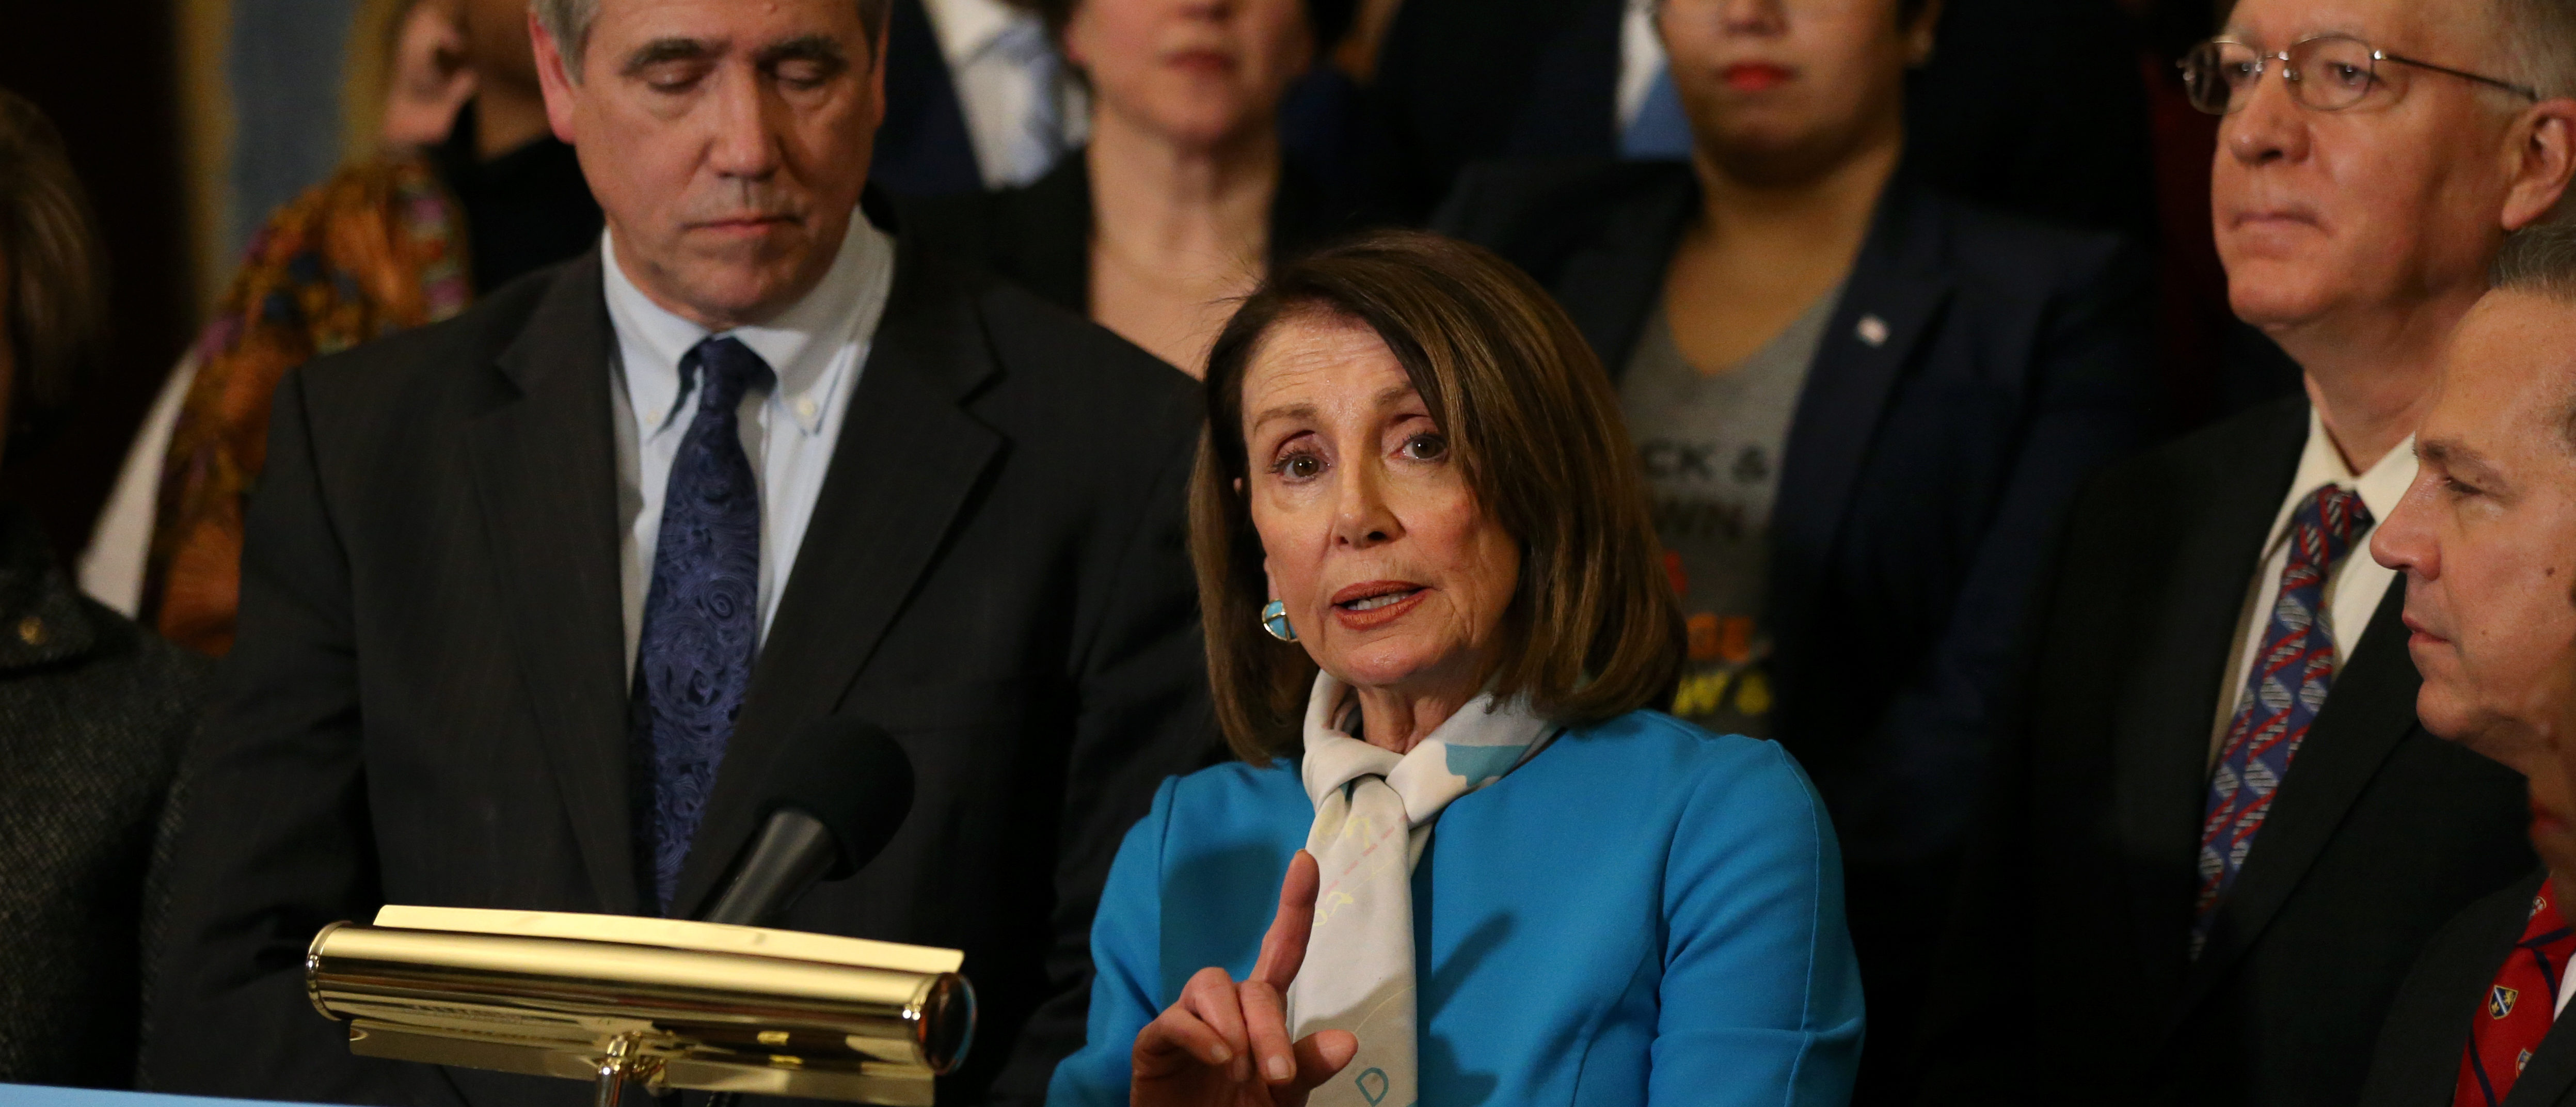 U.S. House of Representatives Speaker Nancy Pelosi speaks about the introduction of the Equality Act at the U.S. Capitol building in Washington, U.S., March 13, 2019. REUTERS/Leah Millis.